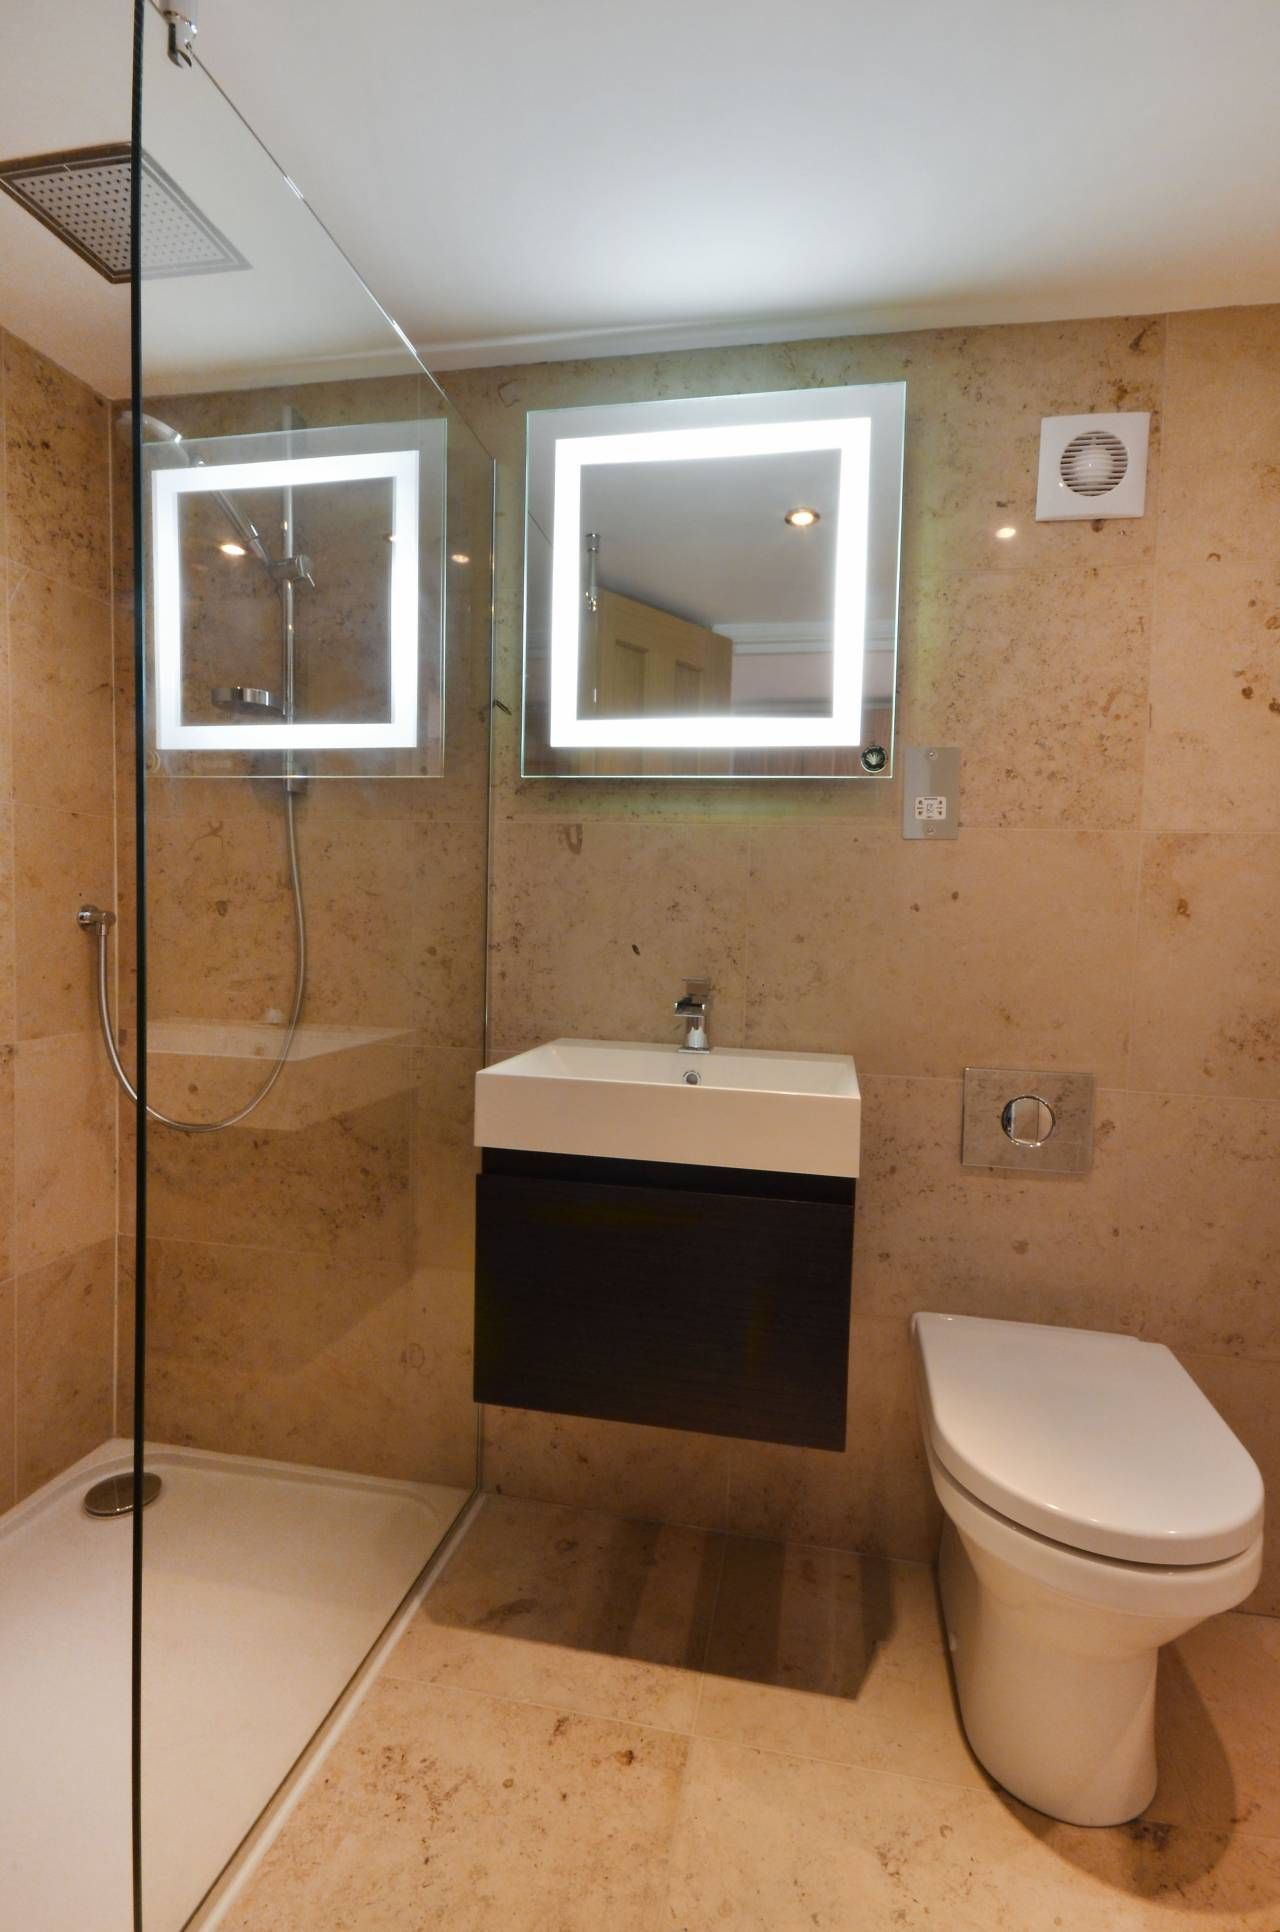 Ensuite Bathroom Fixtures en suite shower room - a walk in shower, nicely tiled walls and an